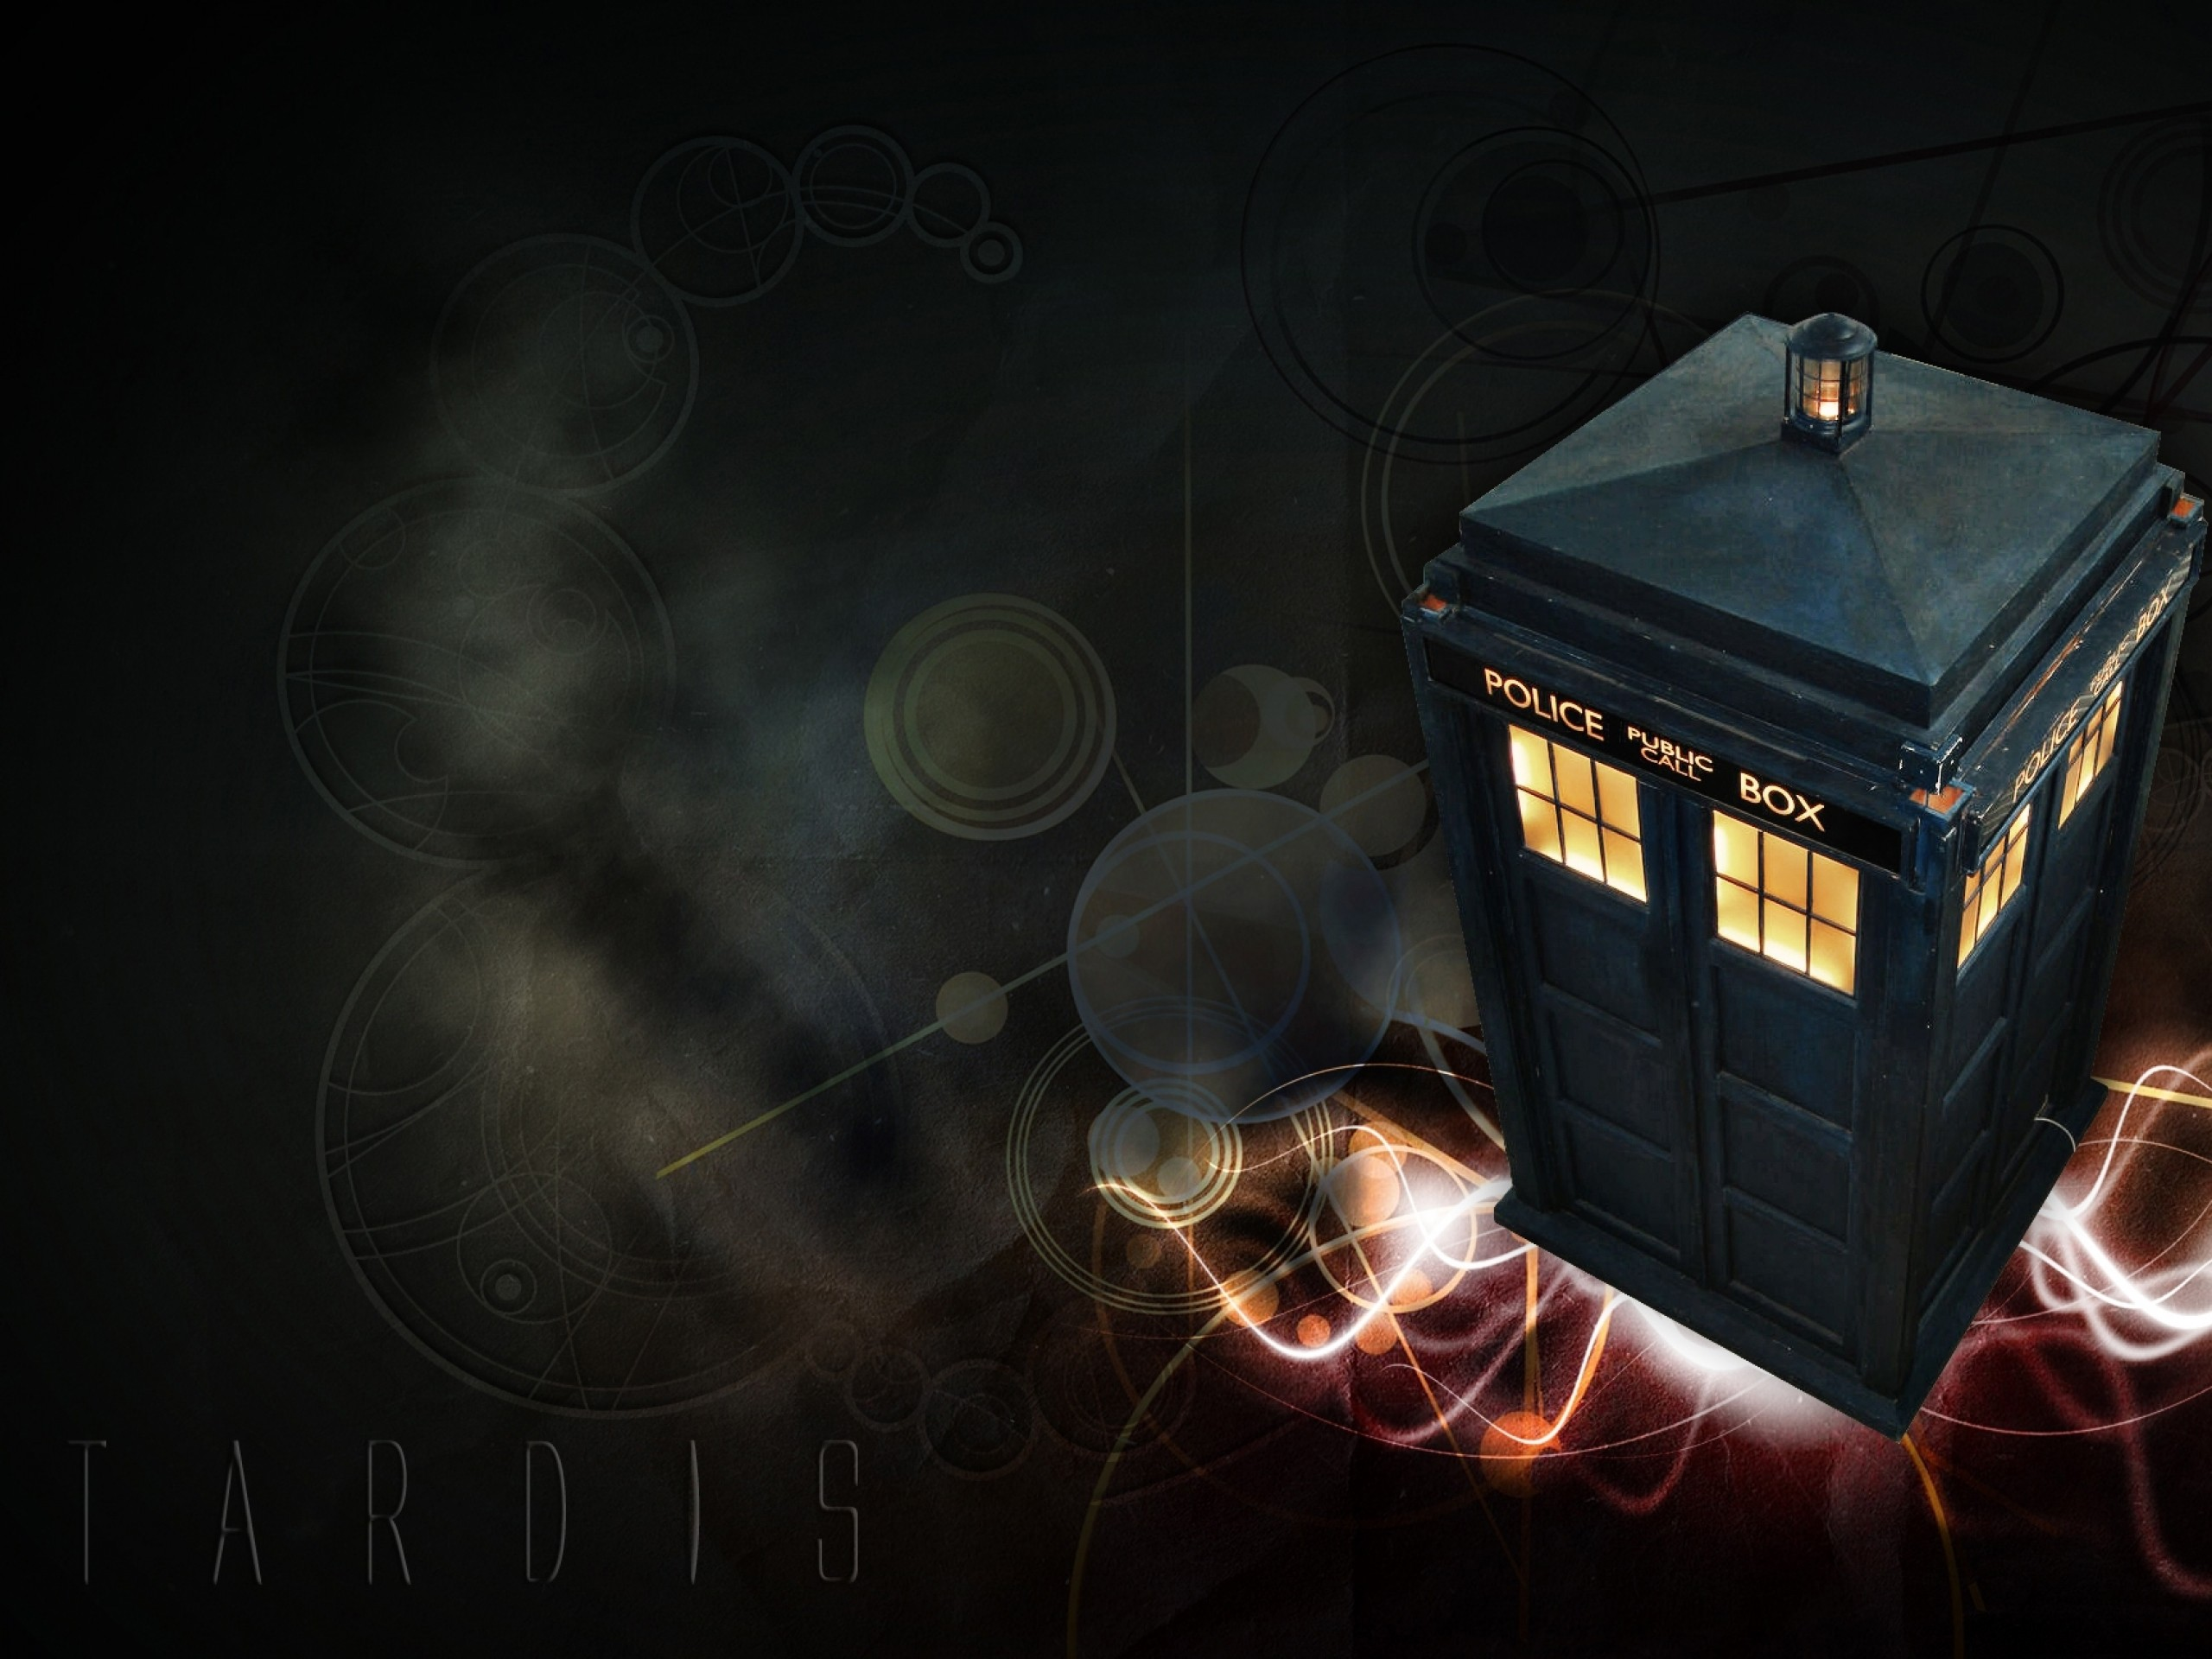 Tardis Wallpaper Hd Doctor Who The Doctor Tardis Wallpapers Hd Desktop And